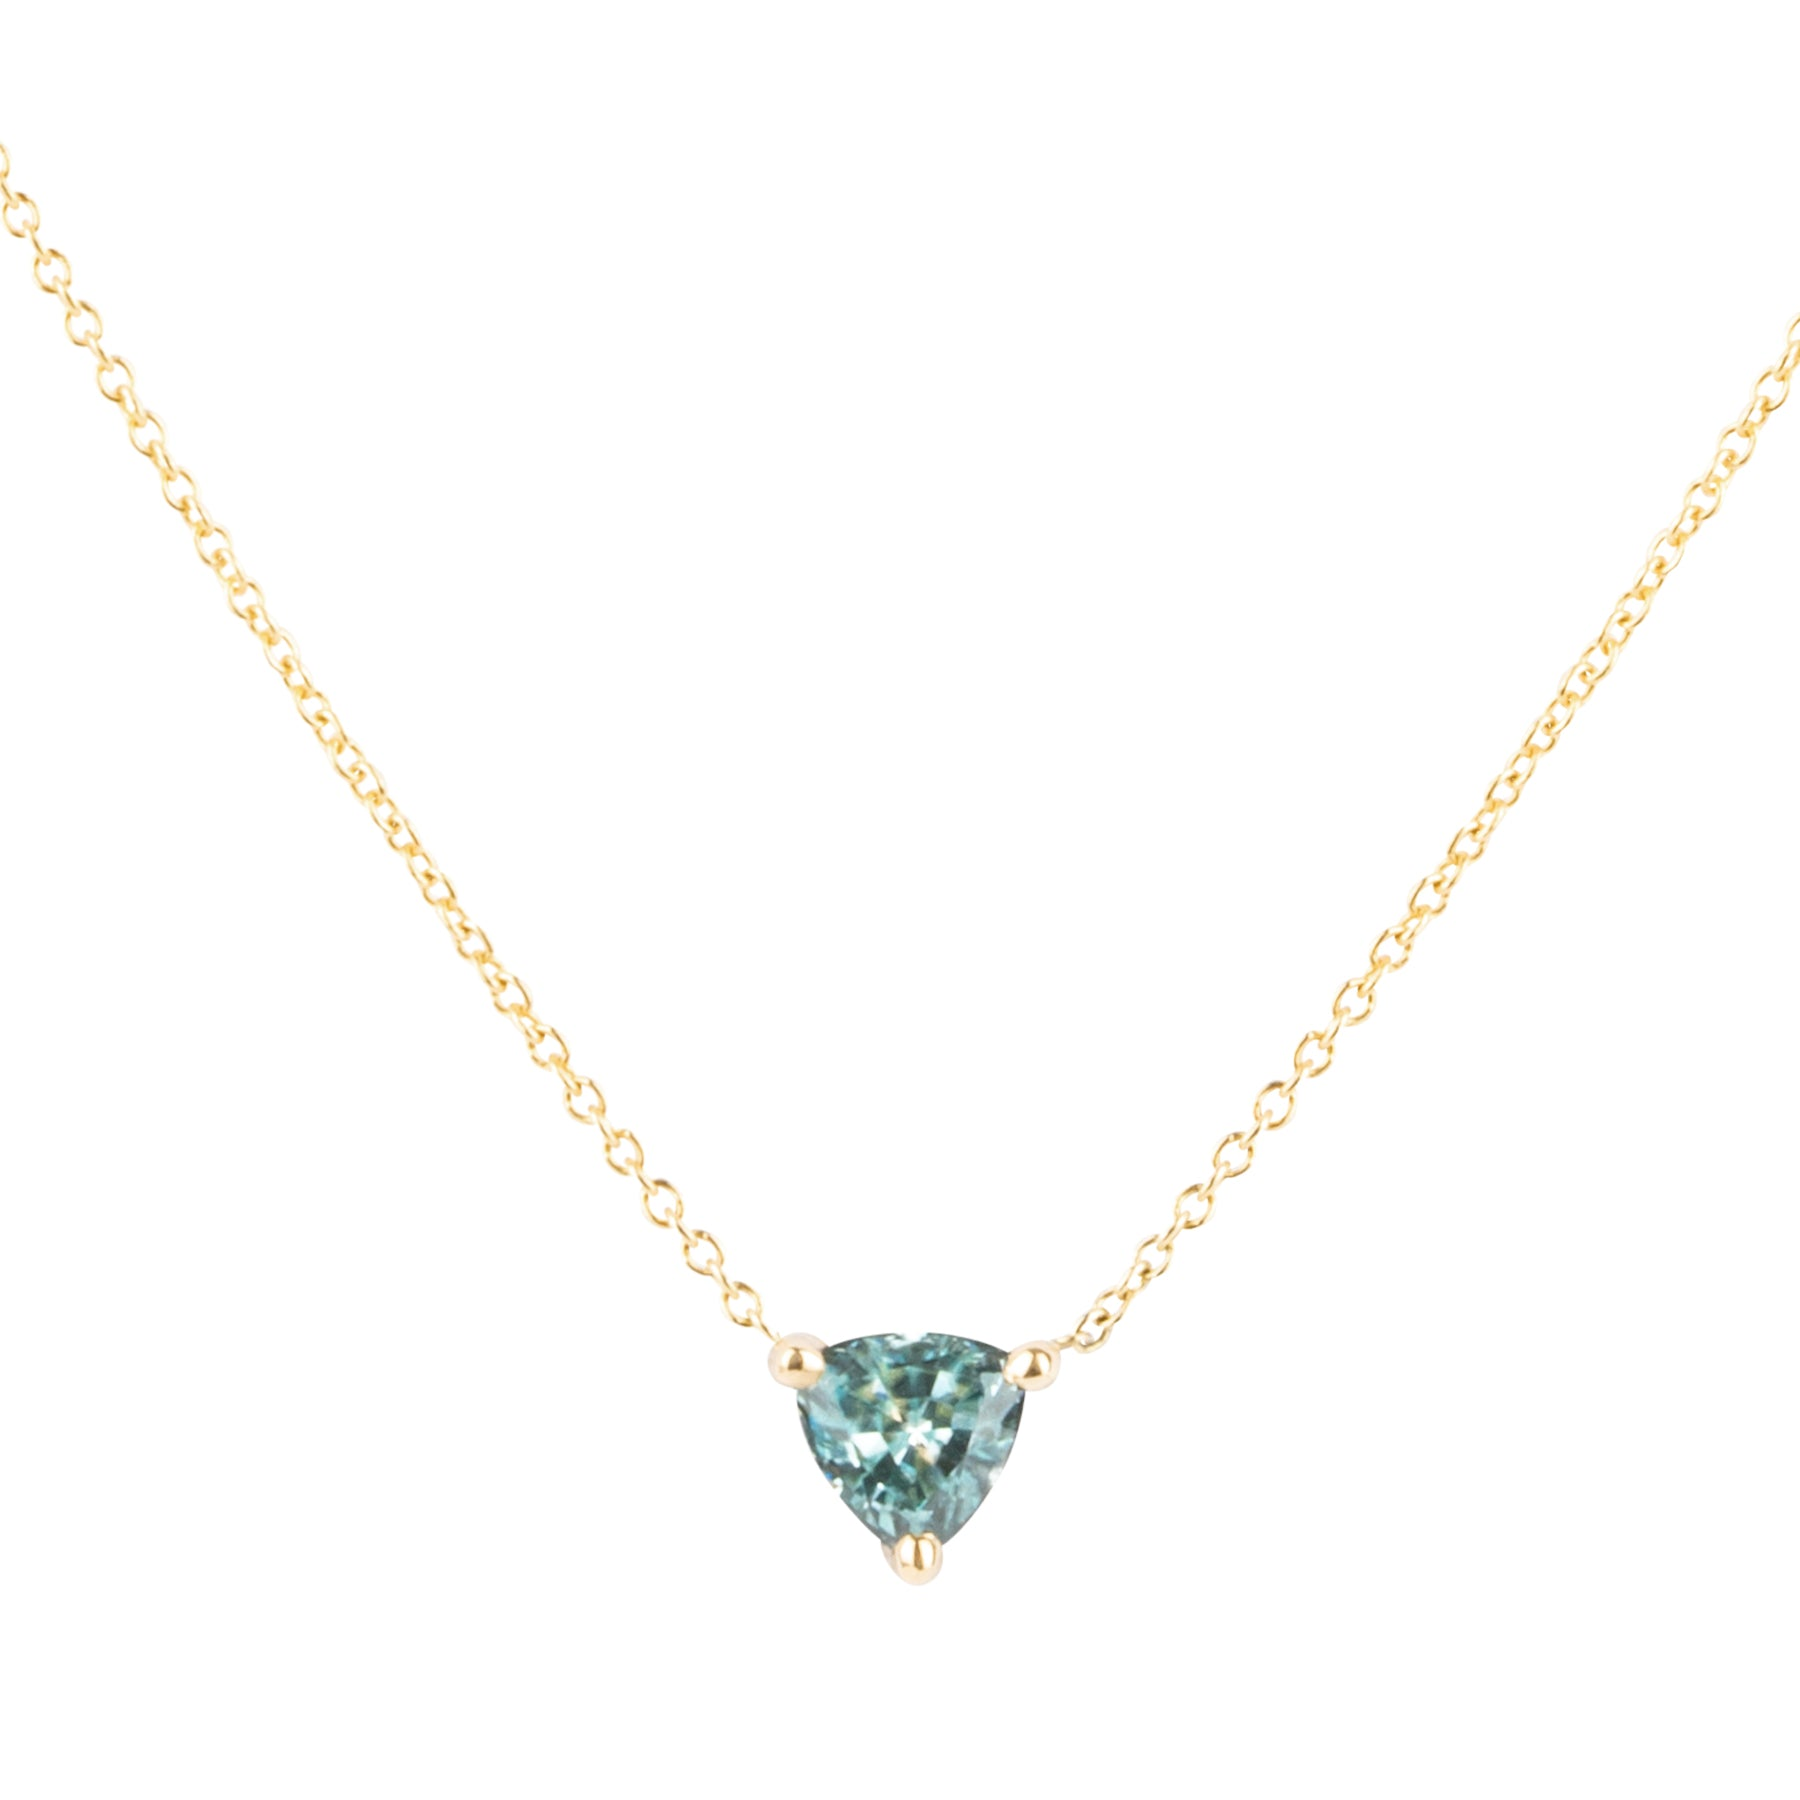 Gem Candy Light Green Tourmaline Trillion Necklace